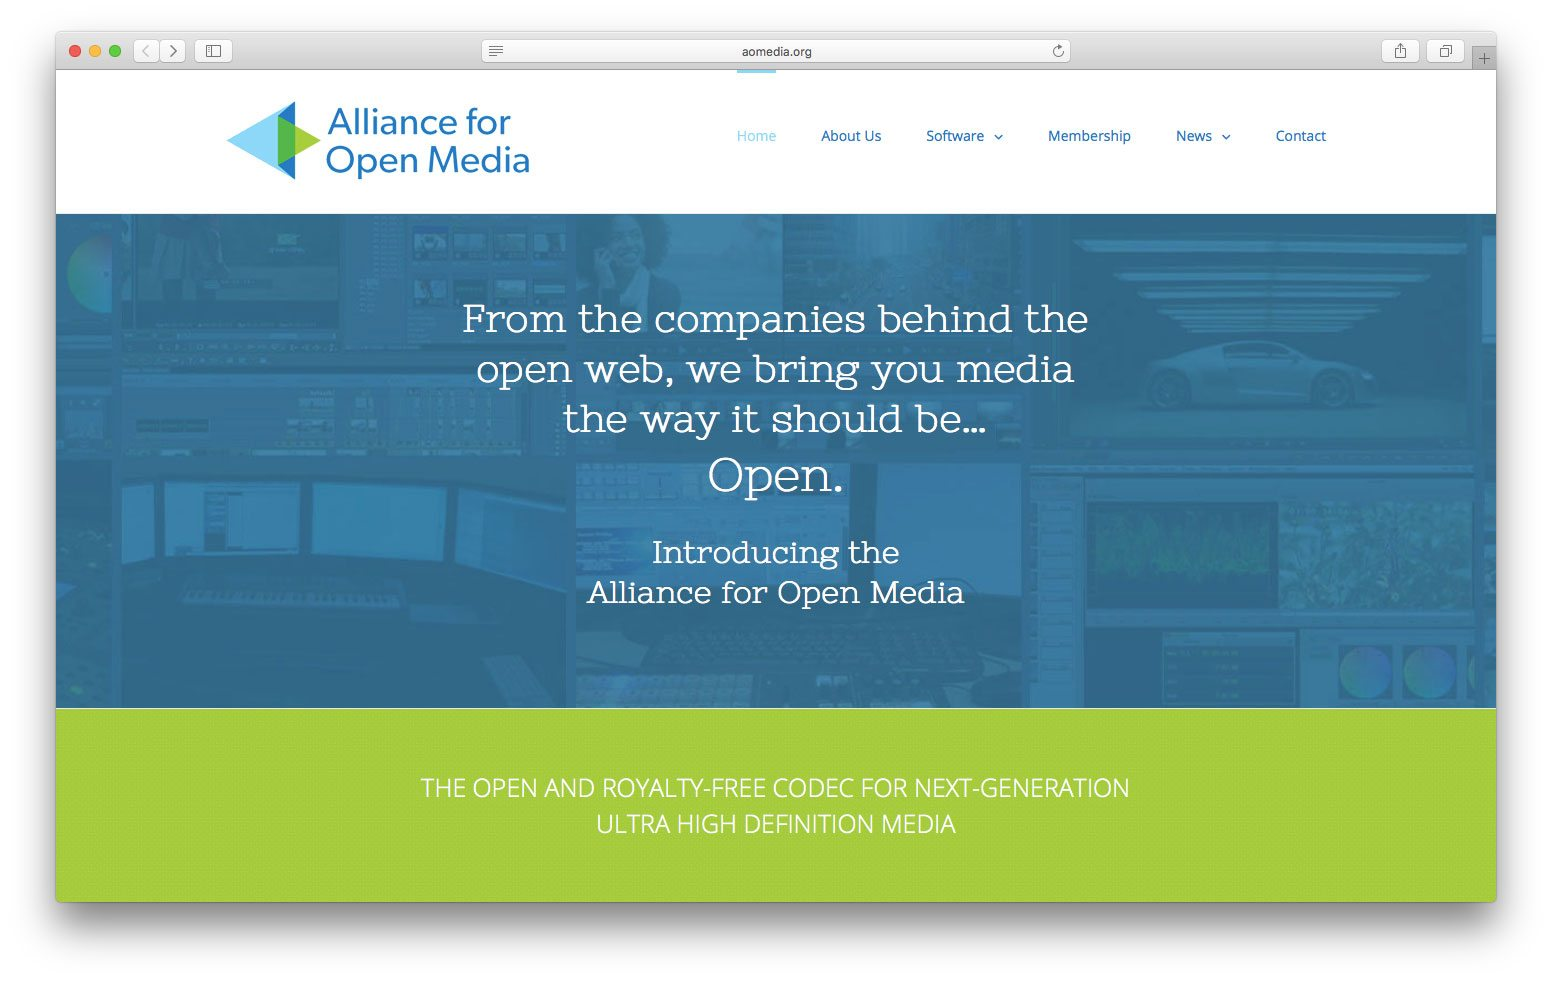 La home dell'Alliance for Open Media che promuove AV1 di cui Apple ora è parte